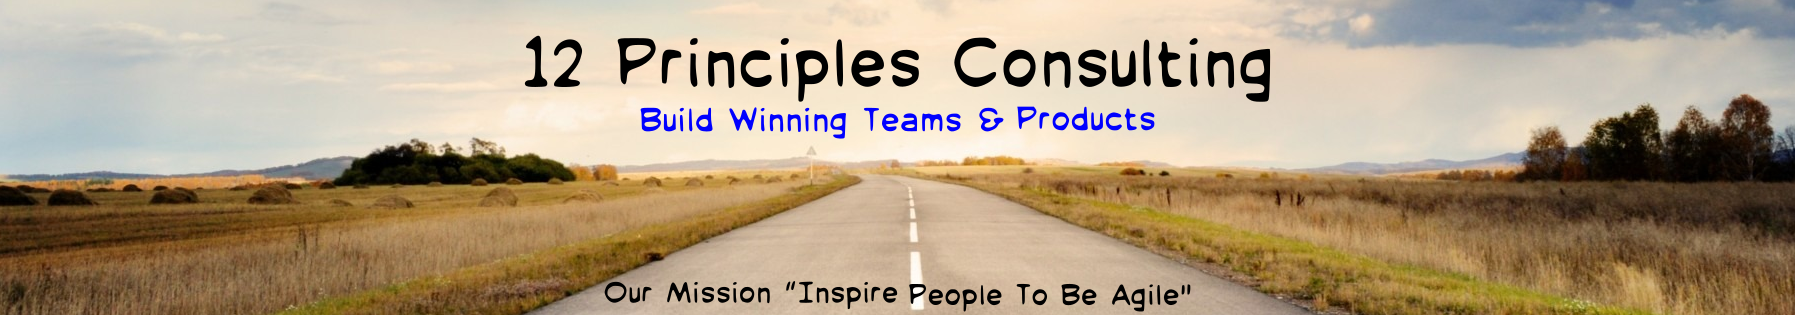 12 Principles Consulting